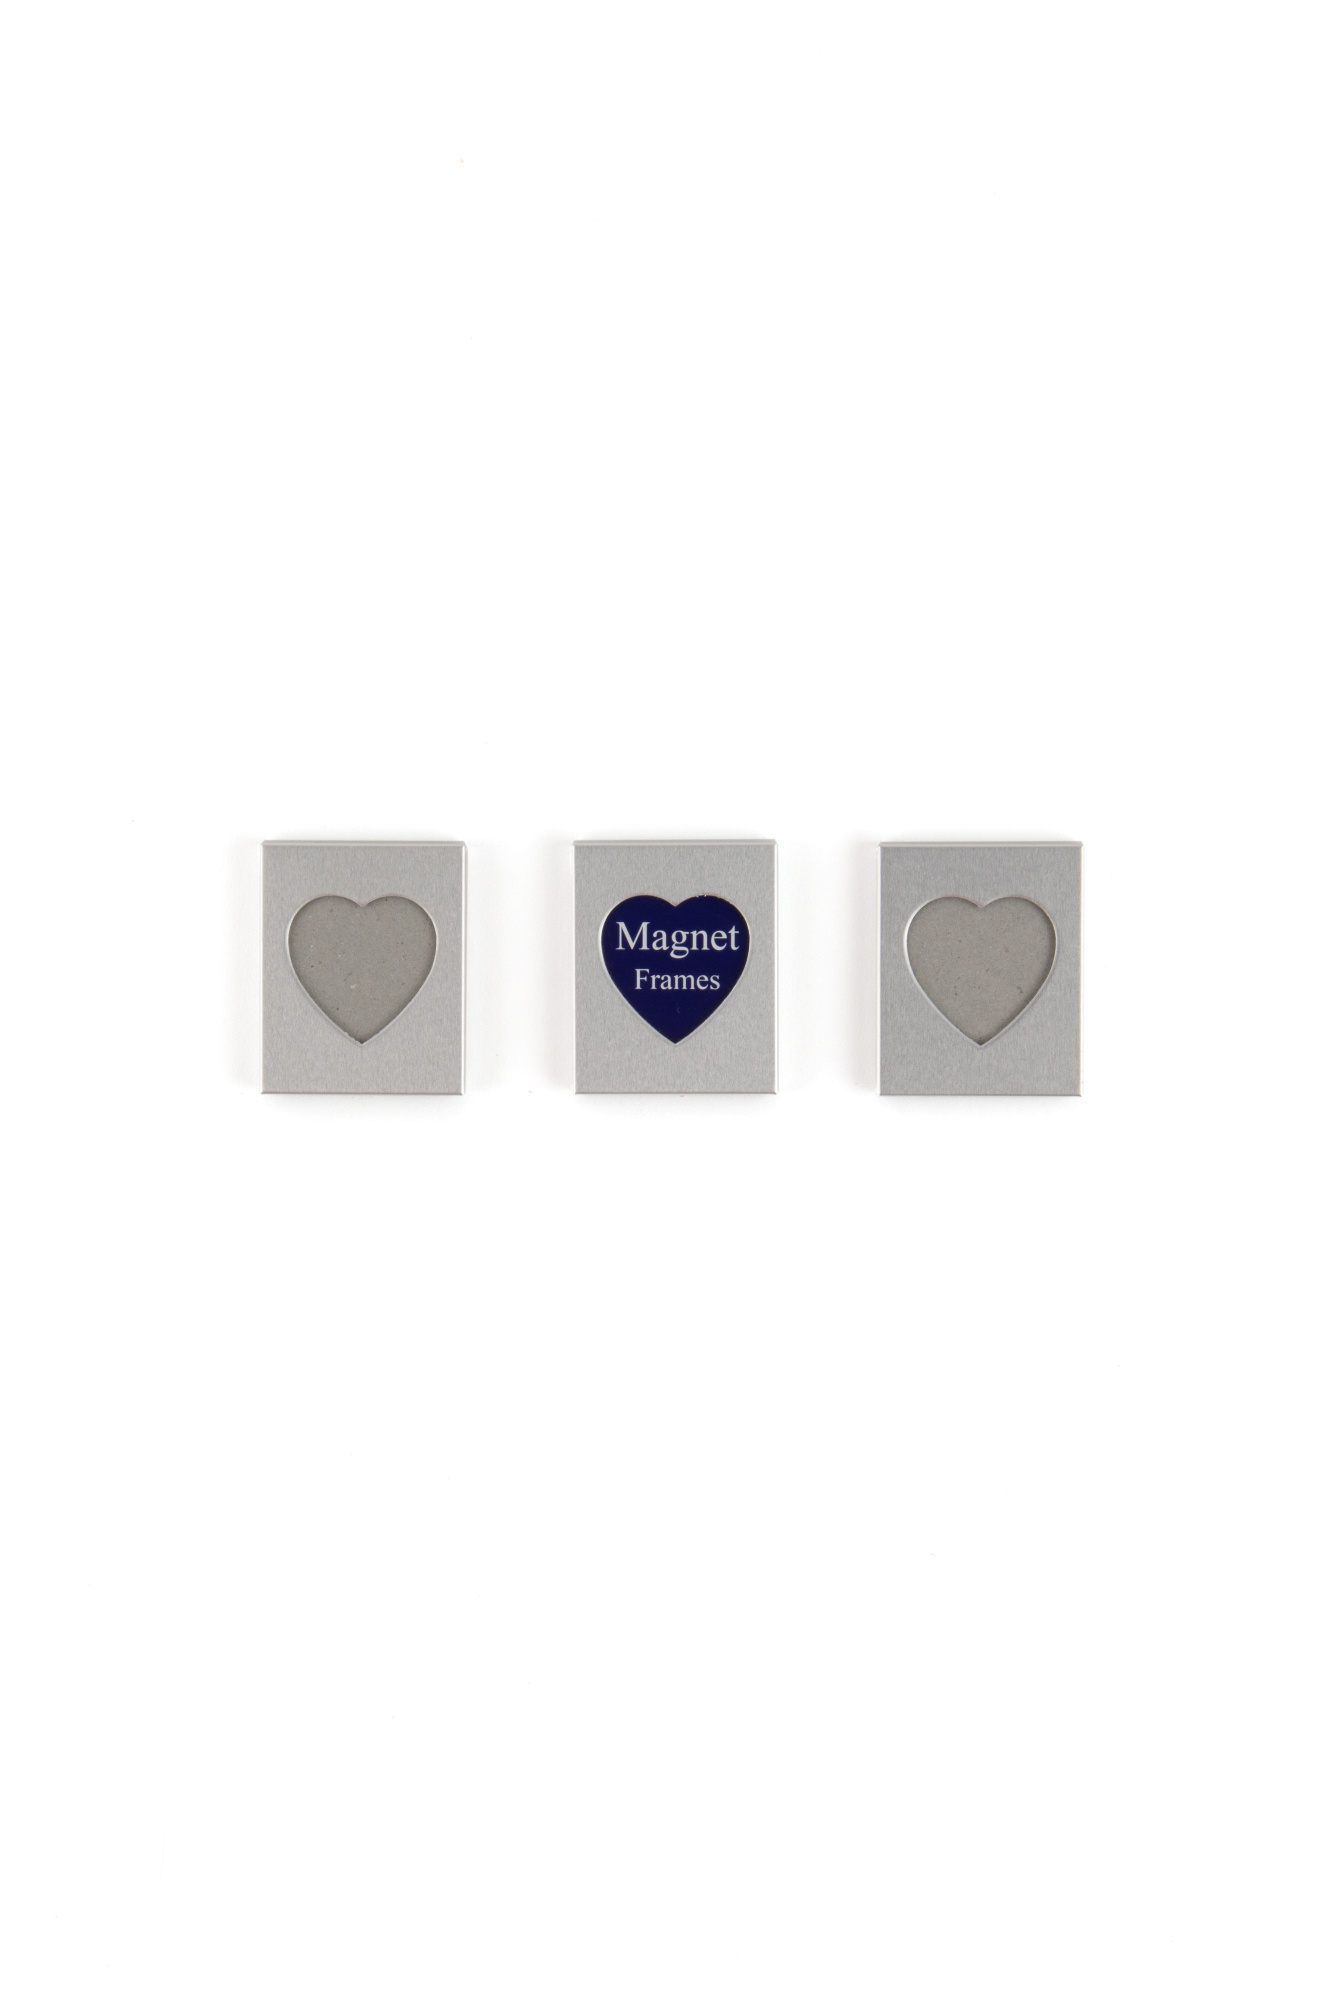 Photo Frames Heart Shaped Magnetic Small Silver 3 Pack 68180008803 ...